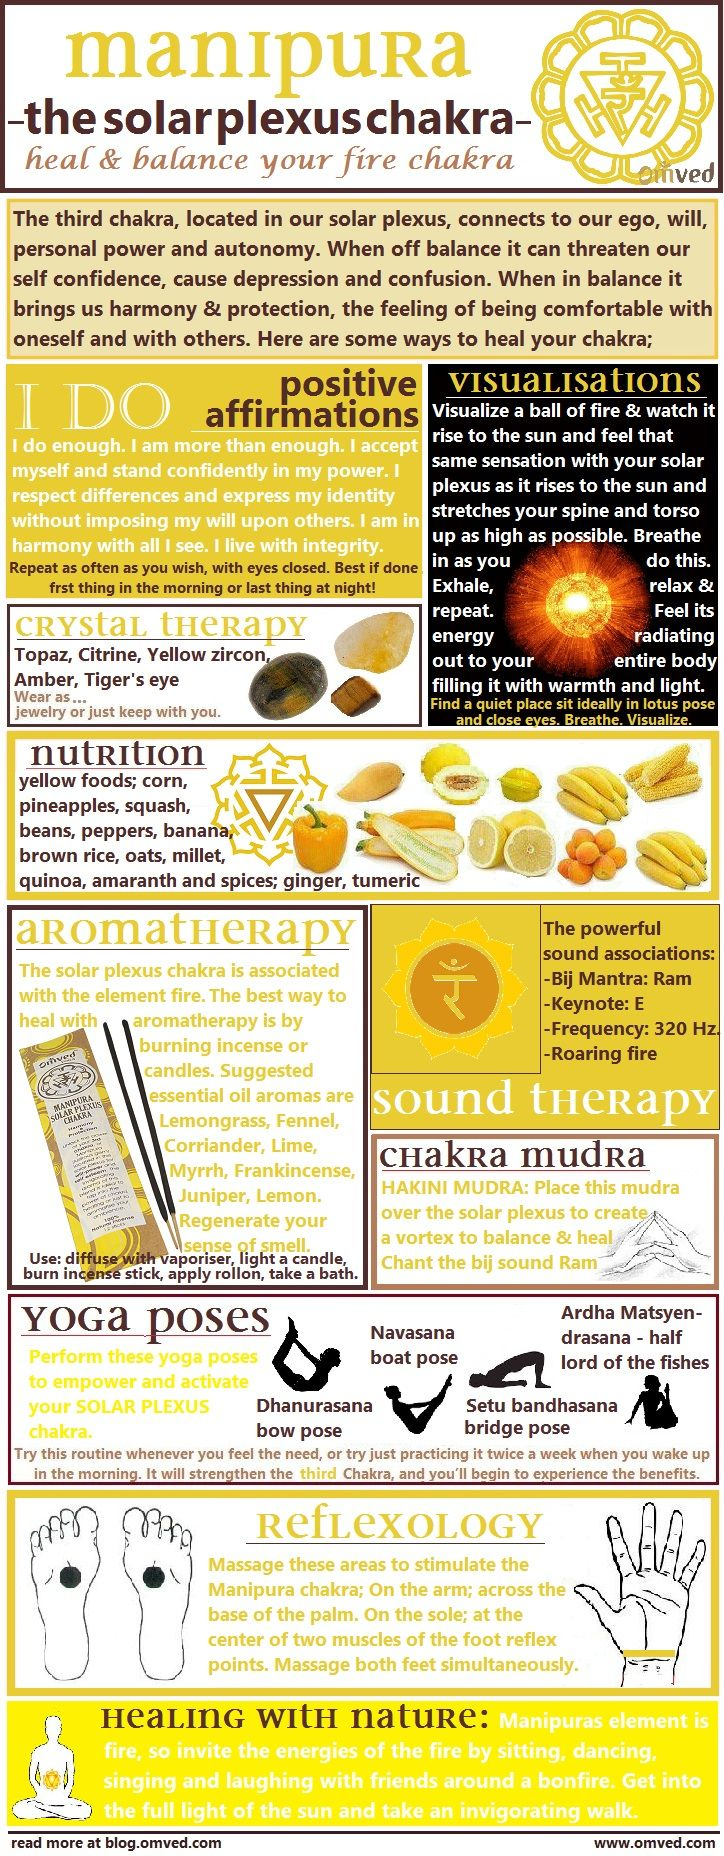 10 Ways to Heal and Balance your Solar Plexus Chakra - Manipura